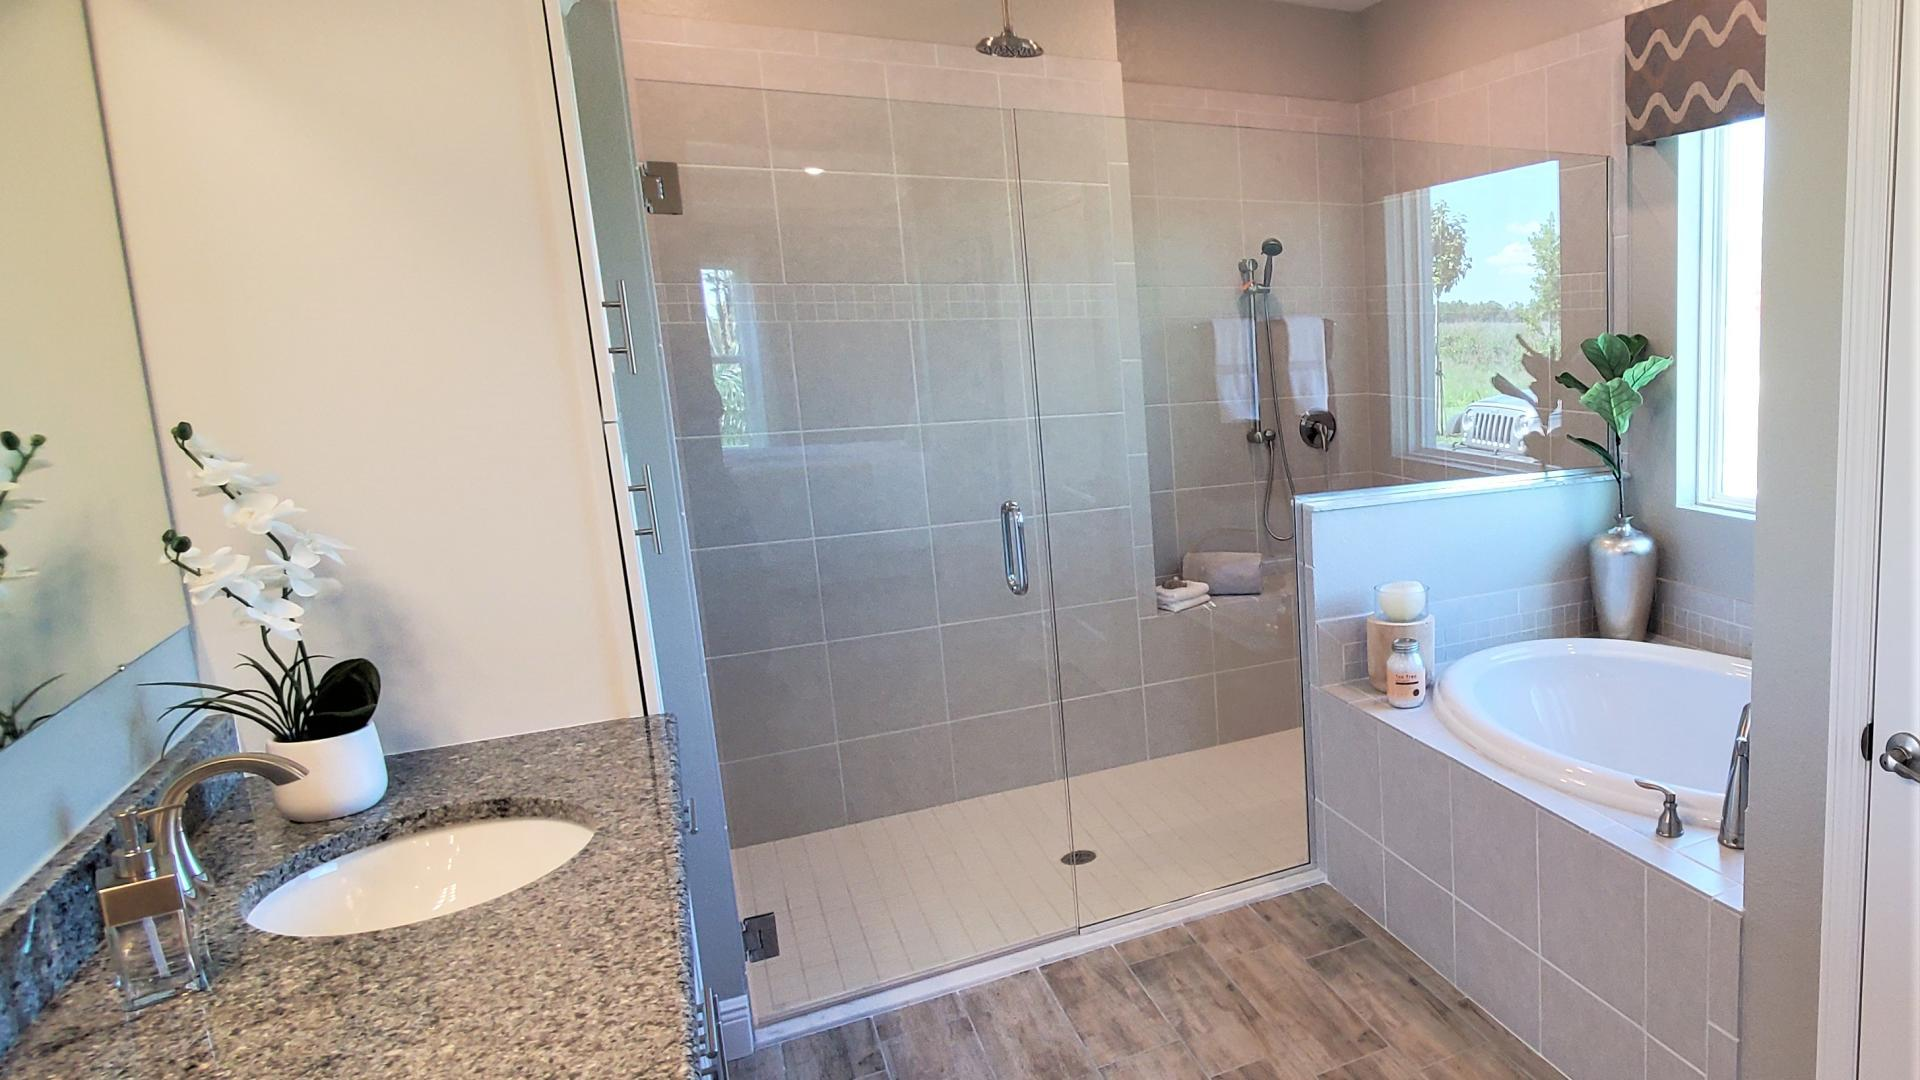 Bathroom featured in the Miramar By Maronda Homes in Fort Myers, FL